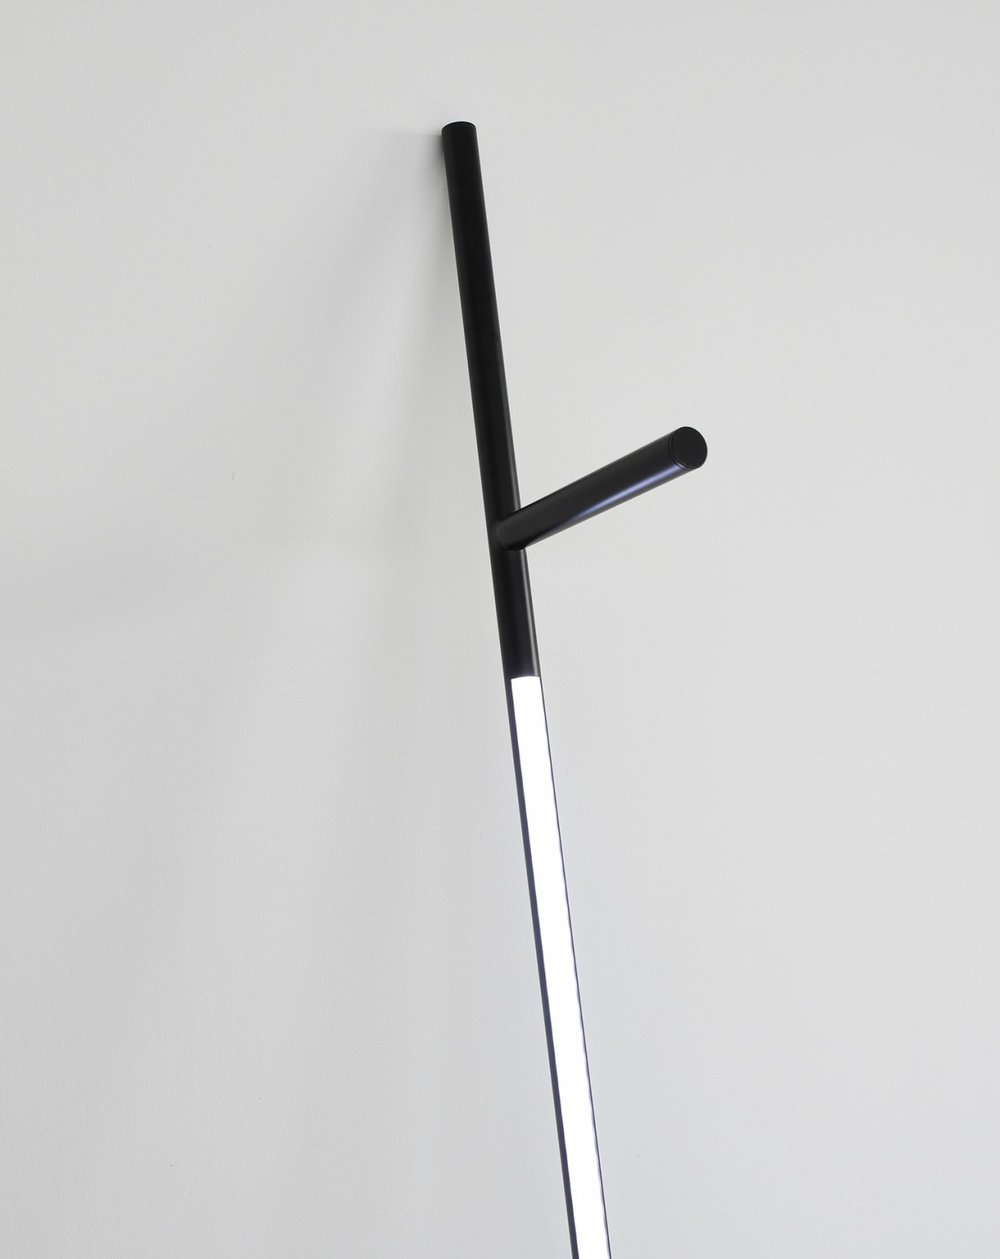 T Lamp designed by Atelier Sohn